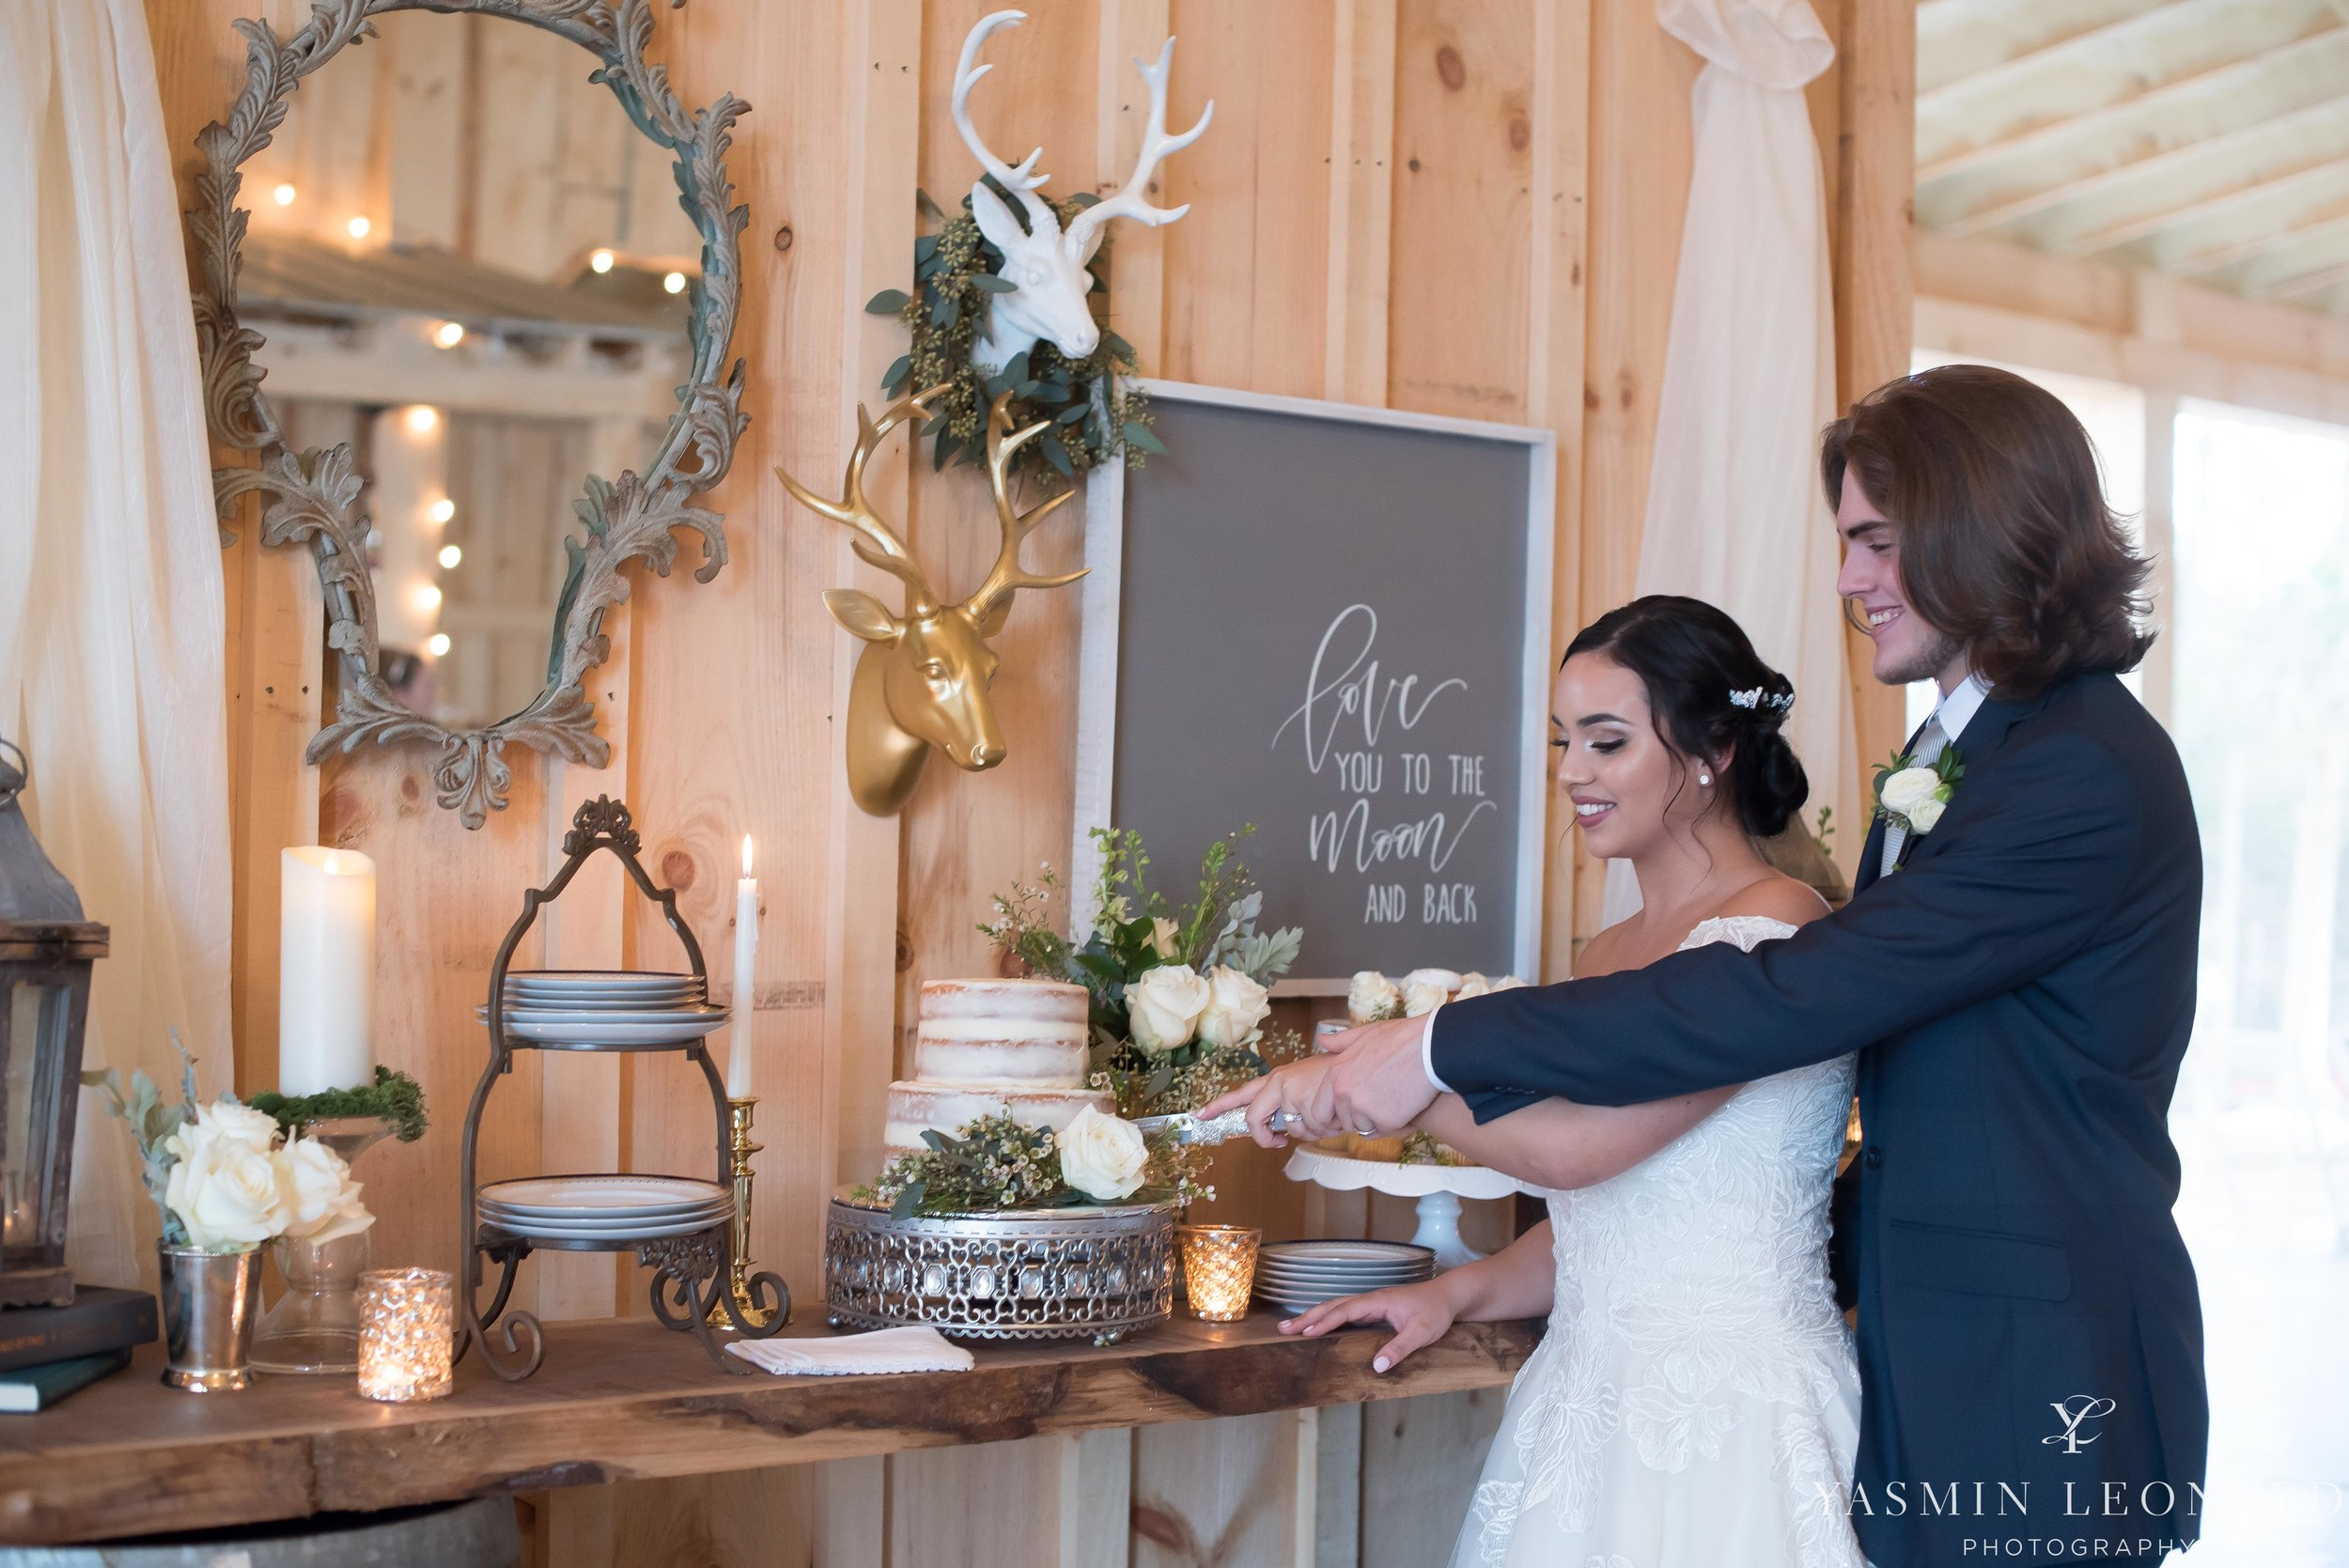 Old Homeplace Vineyard - Grits and Glitter - Dashing Dames Bridal Boutique - Just Priceless - Yasmin Leonard Photography - High Point Weddings - NC Weddings - NC Wedding Venues - High Point Jewelers - NC Wines - NC Vineyards - Cupcake Cuties-71.jpg